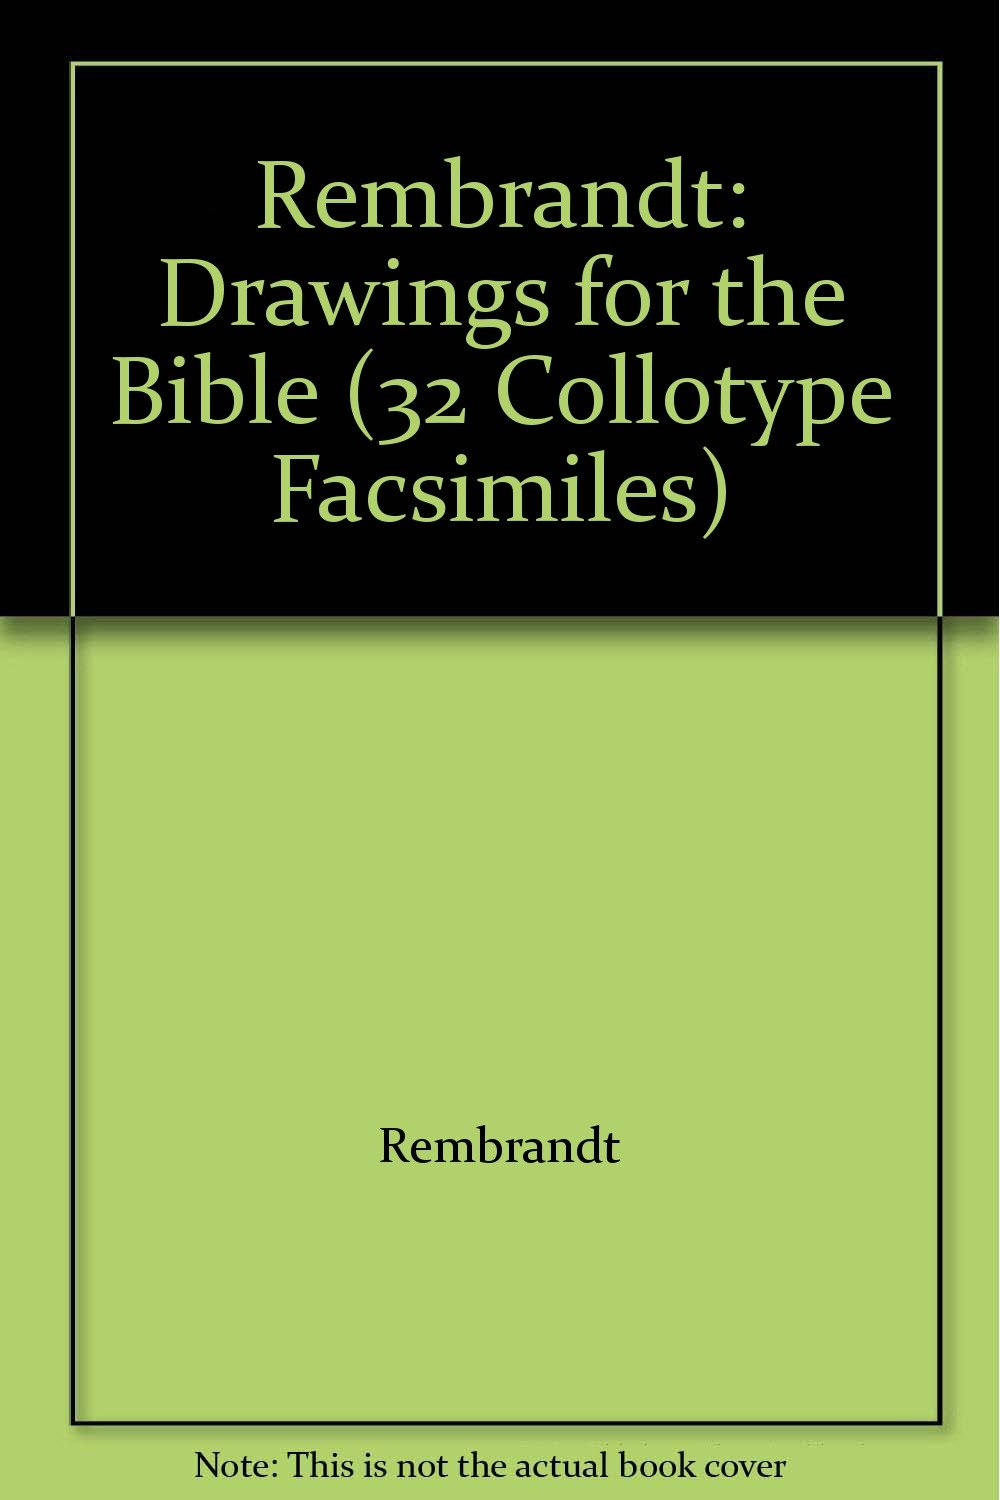 rembrandt drawings for the bible 32 collotype facsimiles